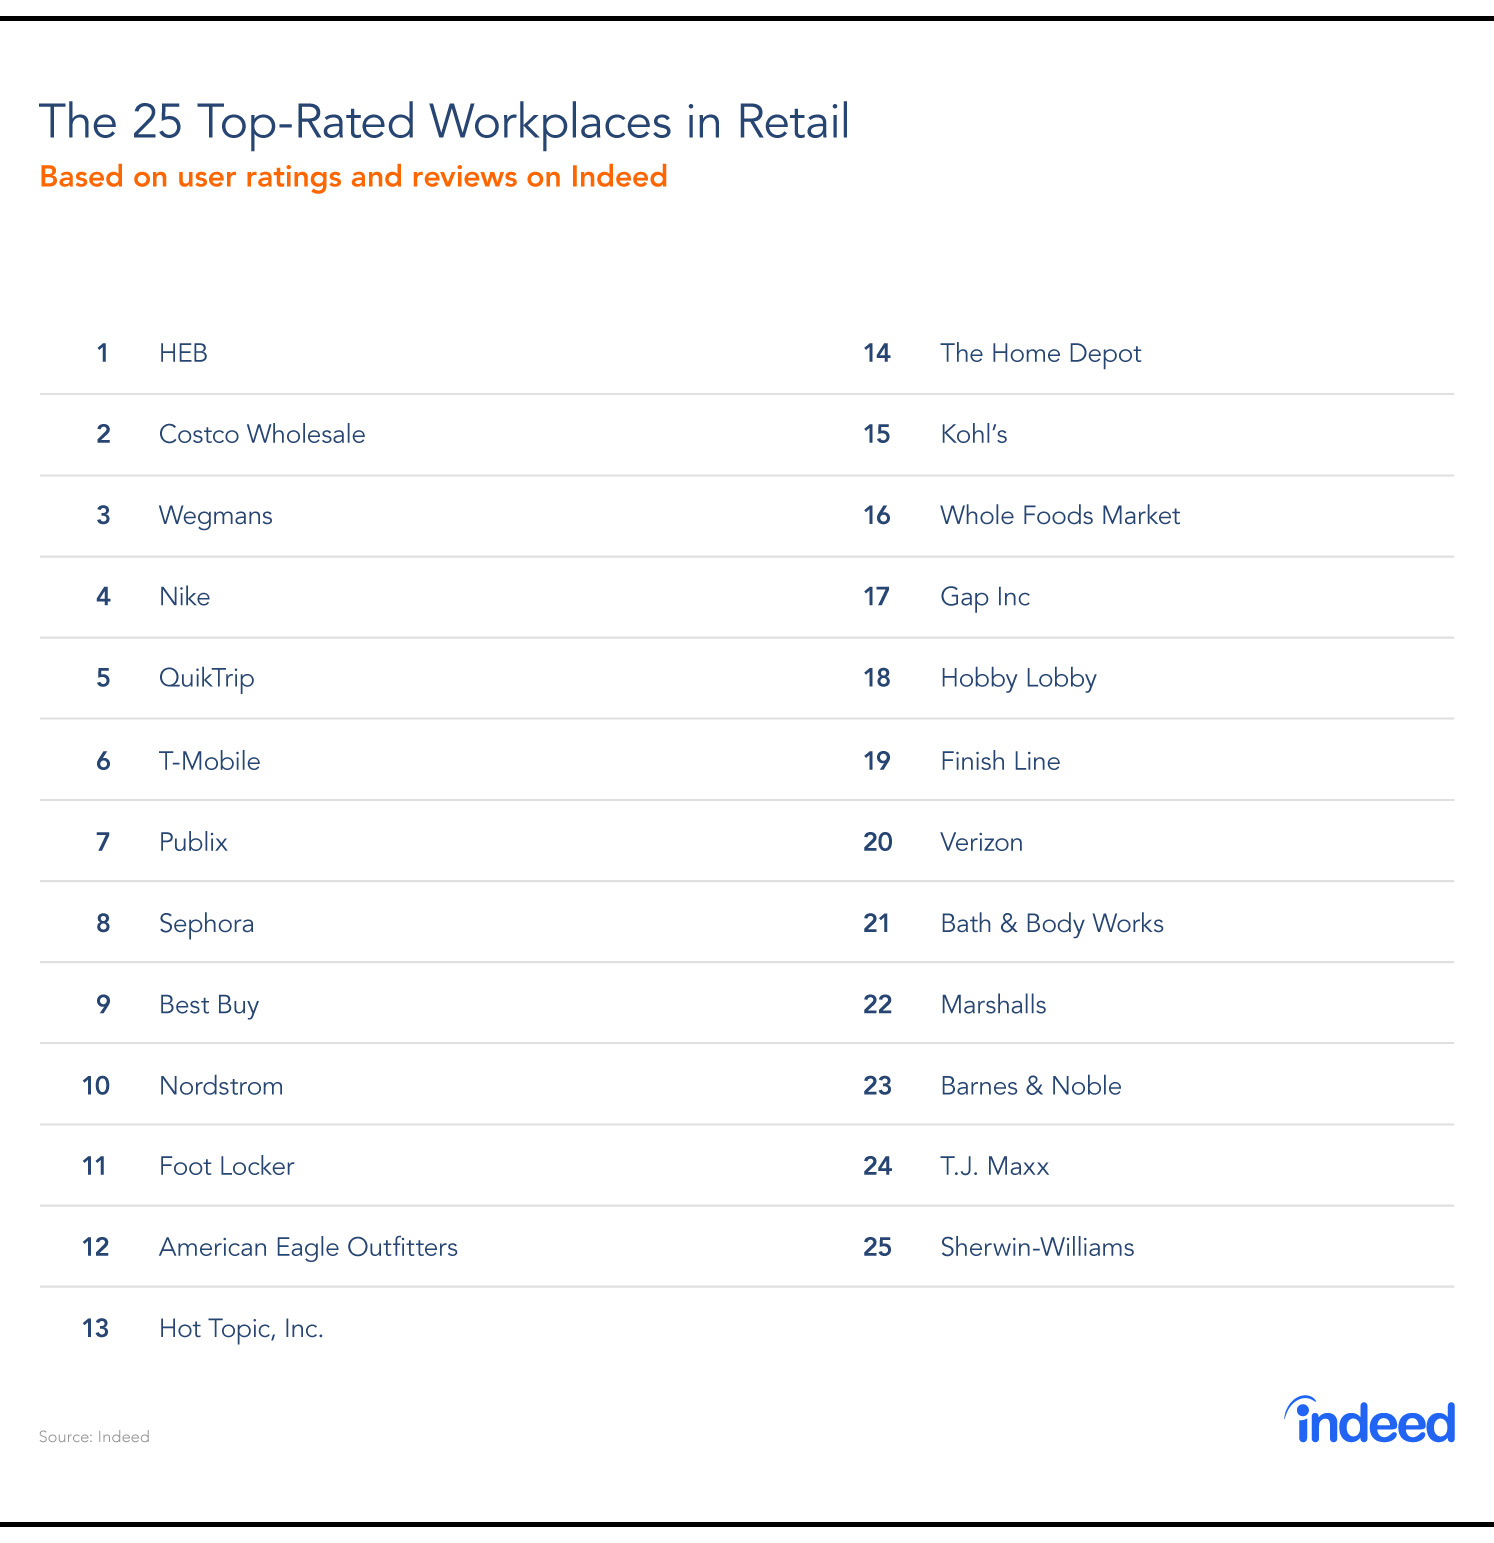 The 25 top-rated workplaces in retail, based on user ratings and reviews on Indeed.